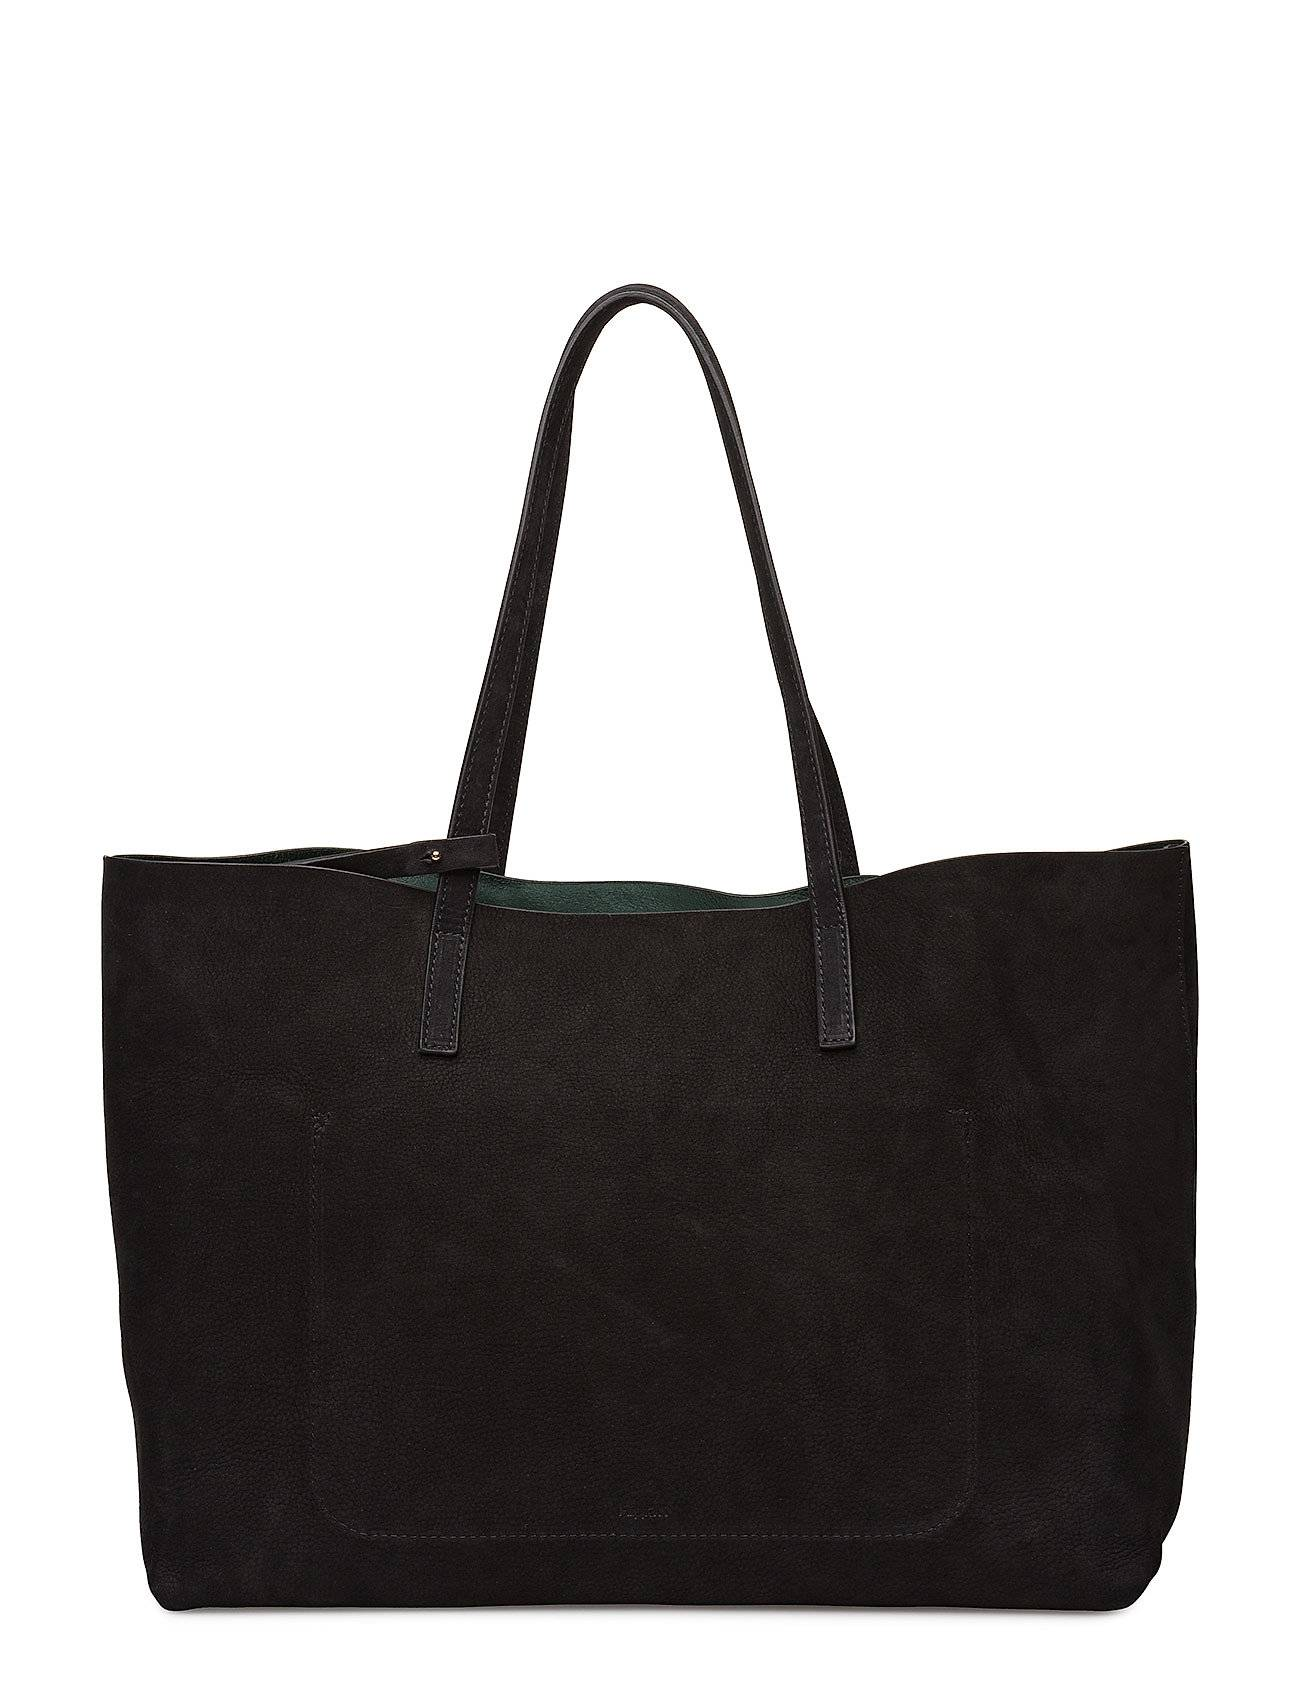 Filippa K Faye Tote Leather Bag